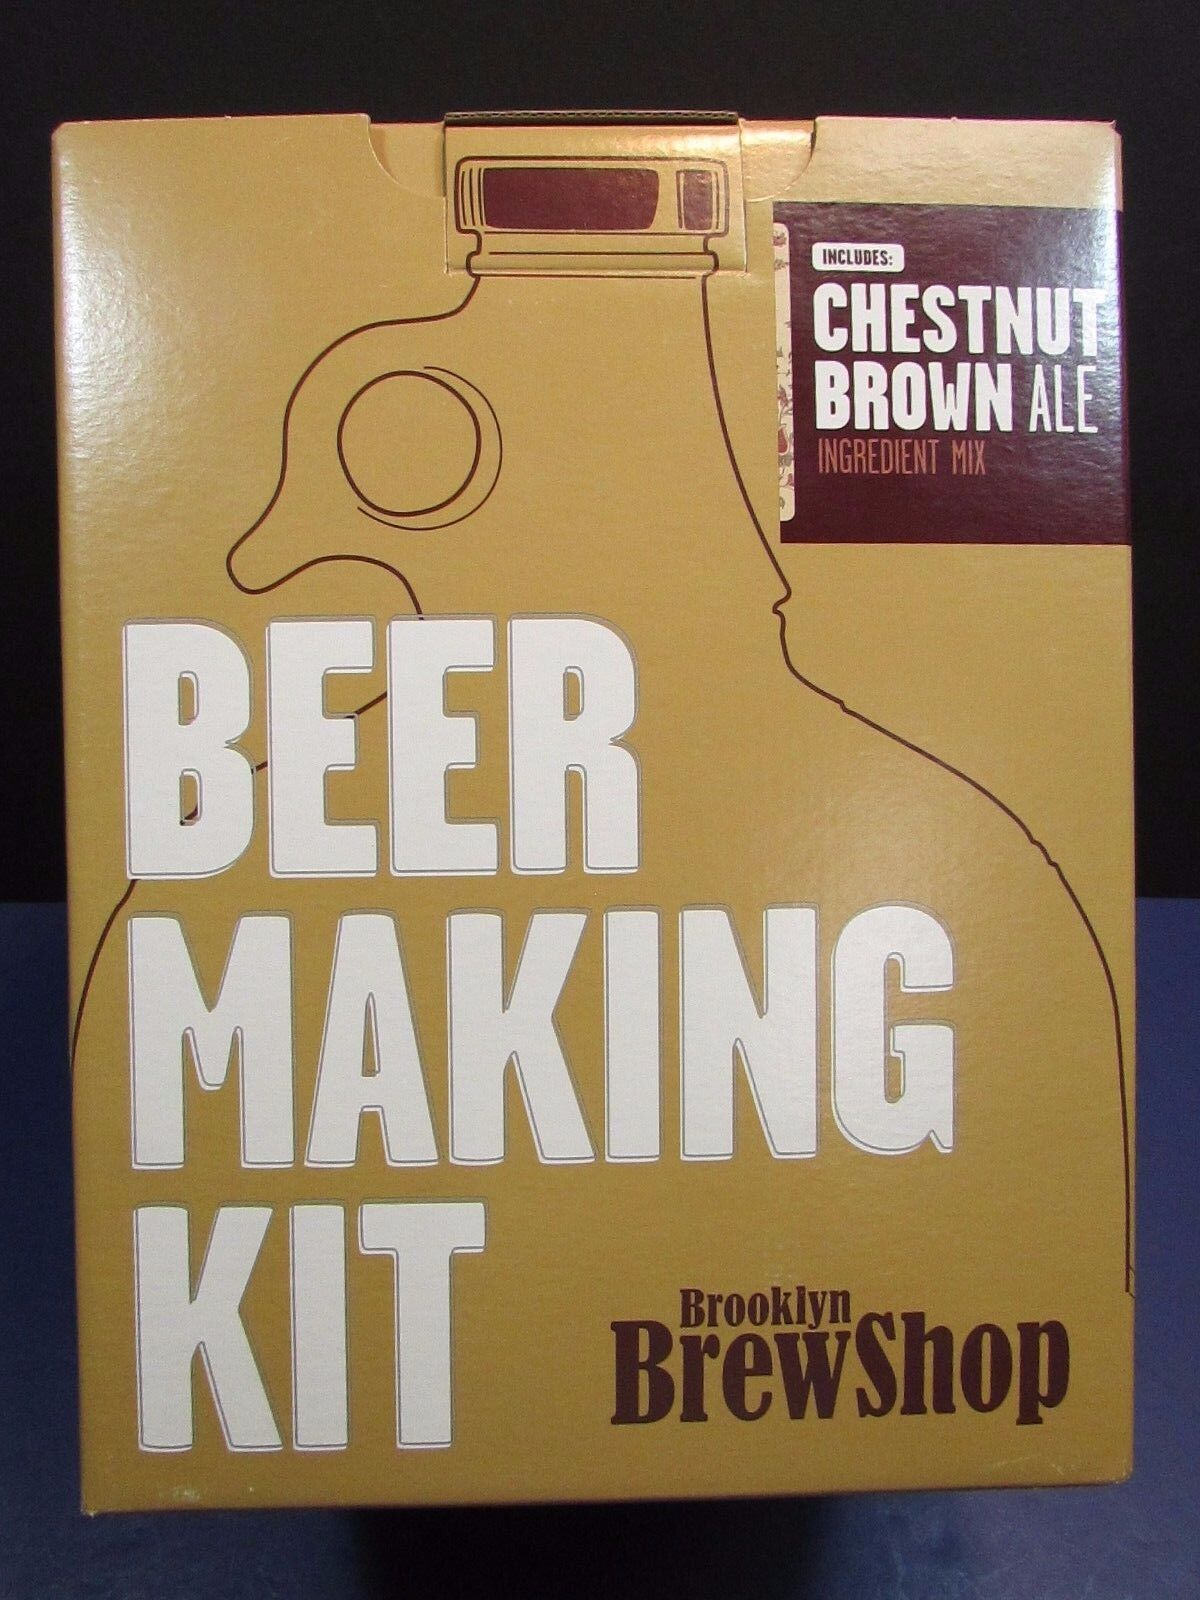 $20.00 - Beer Making Kit Brooklyn Brew Shop Everyday IPA NEW in BOX! Chestnut brown ale